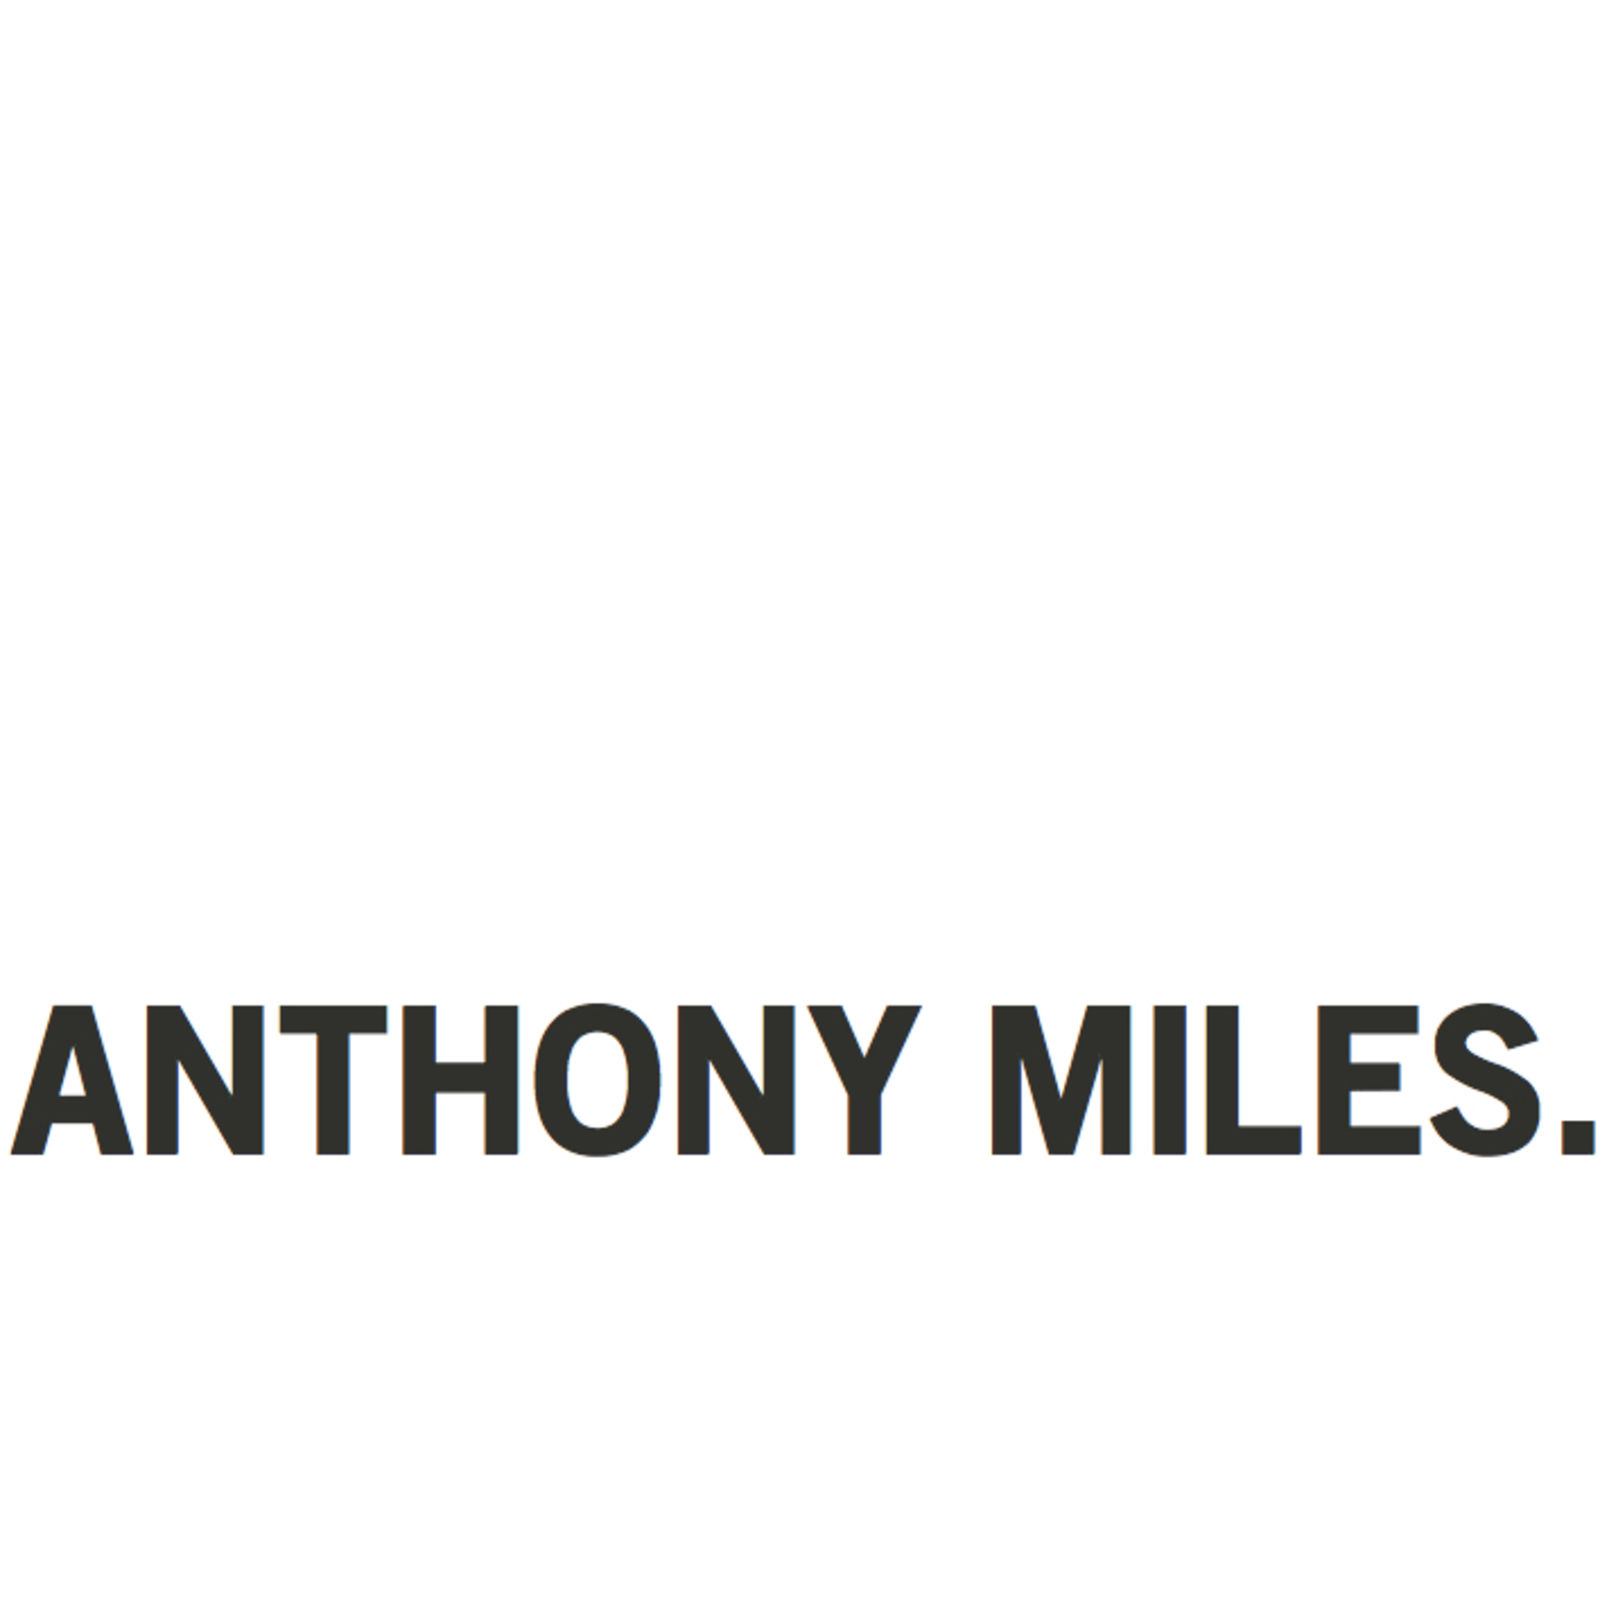 Anthony Miles.